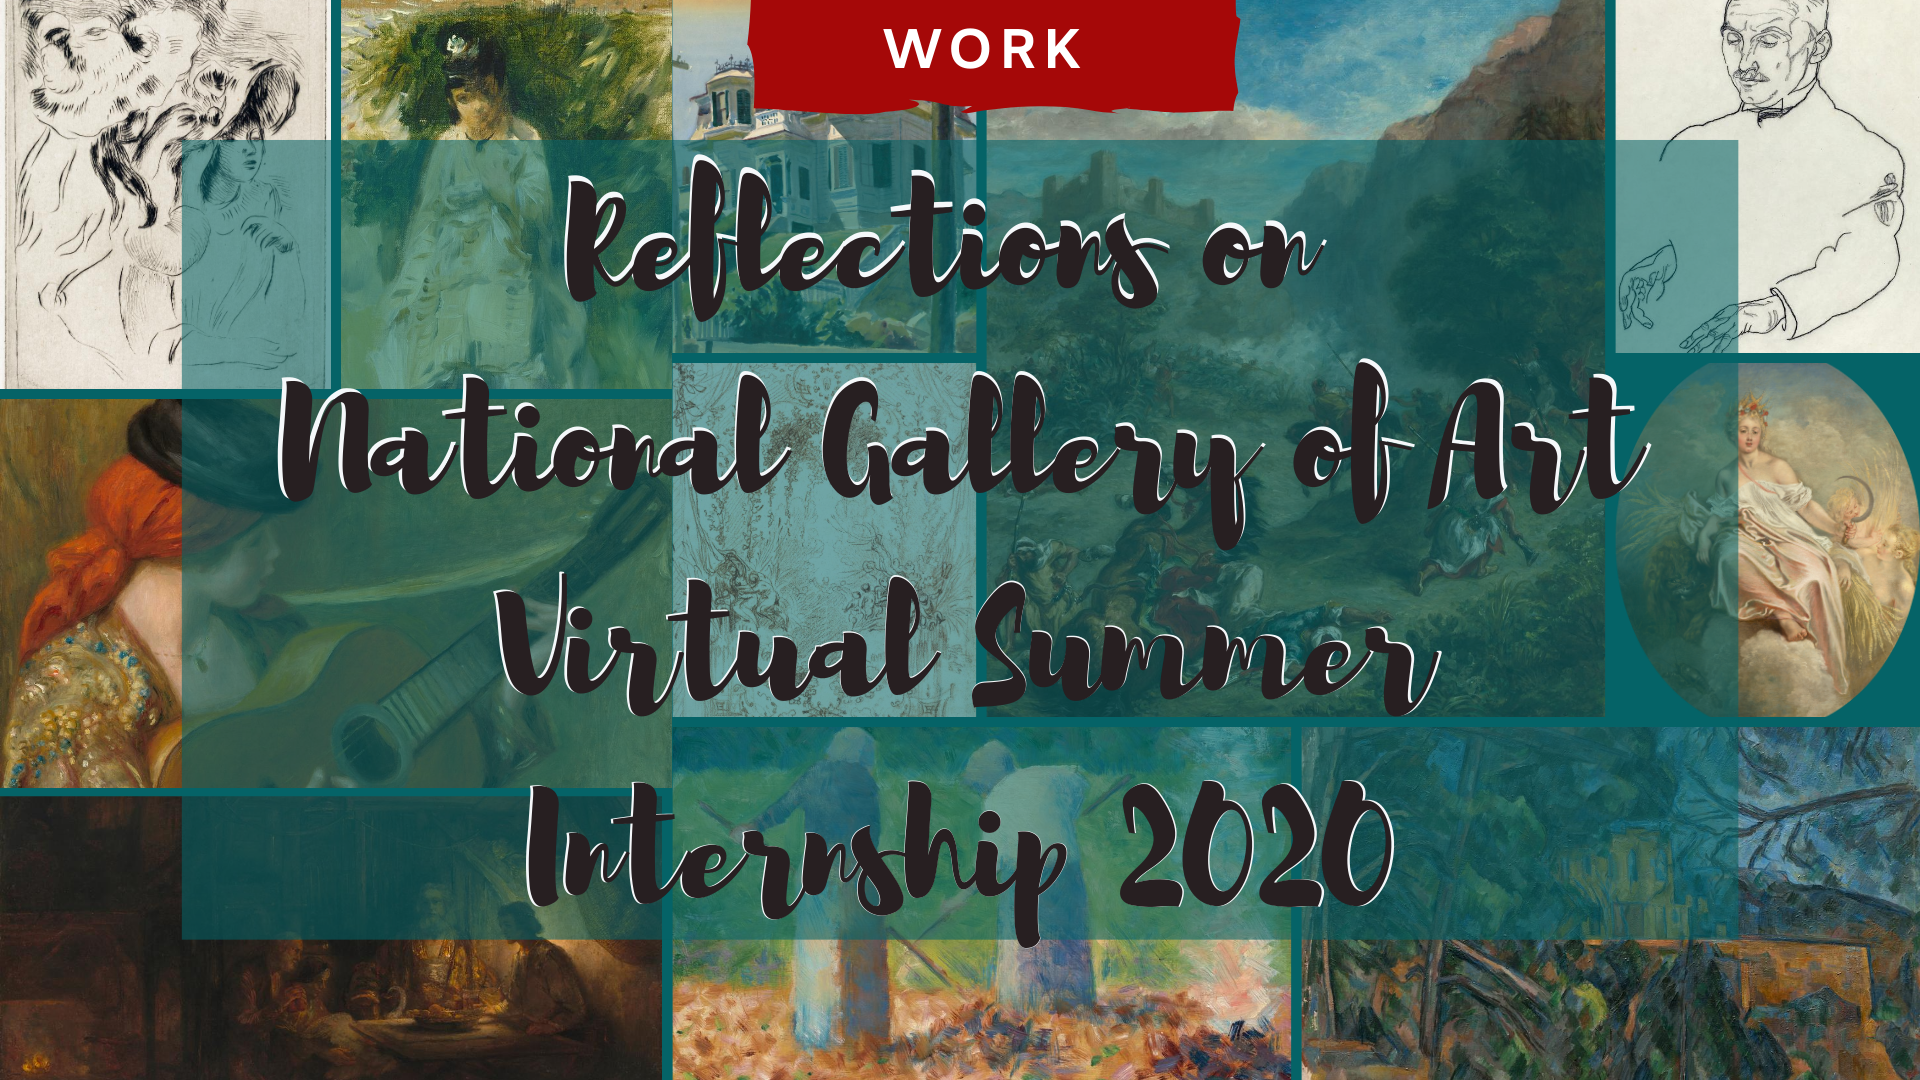 Reflections on NGA Virtual Summer Internship 2020 with NGA artworks in the backgrounds